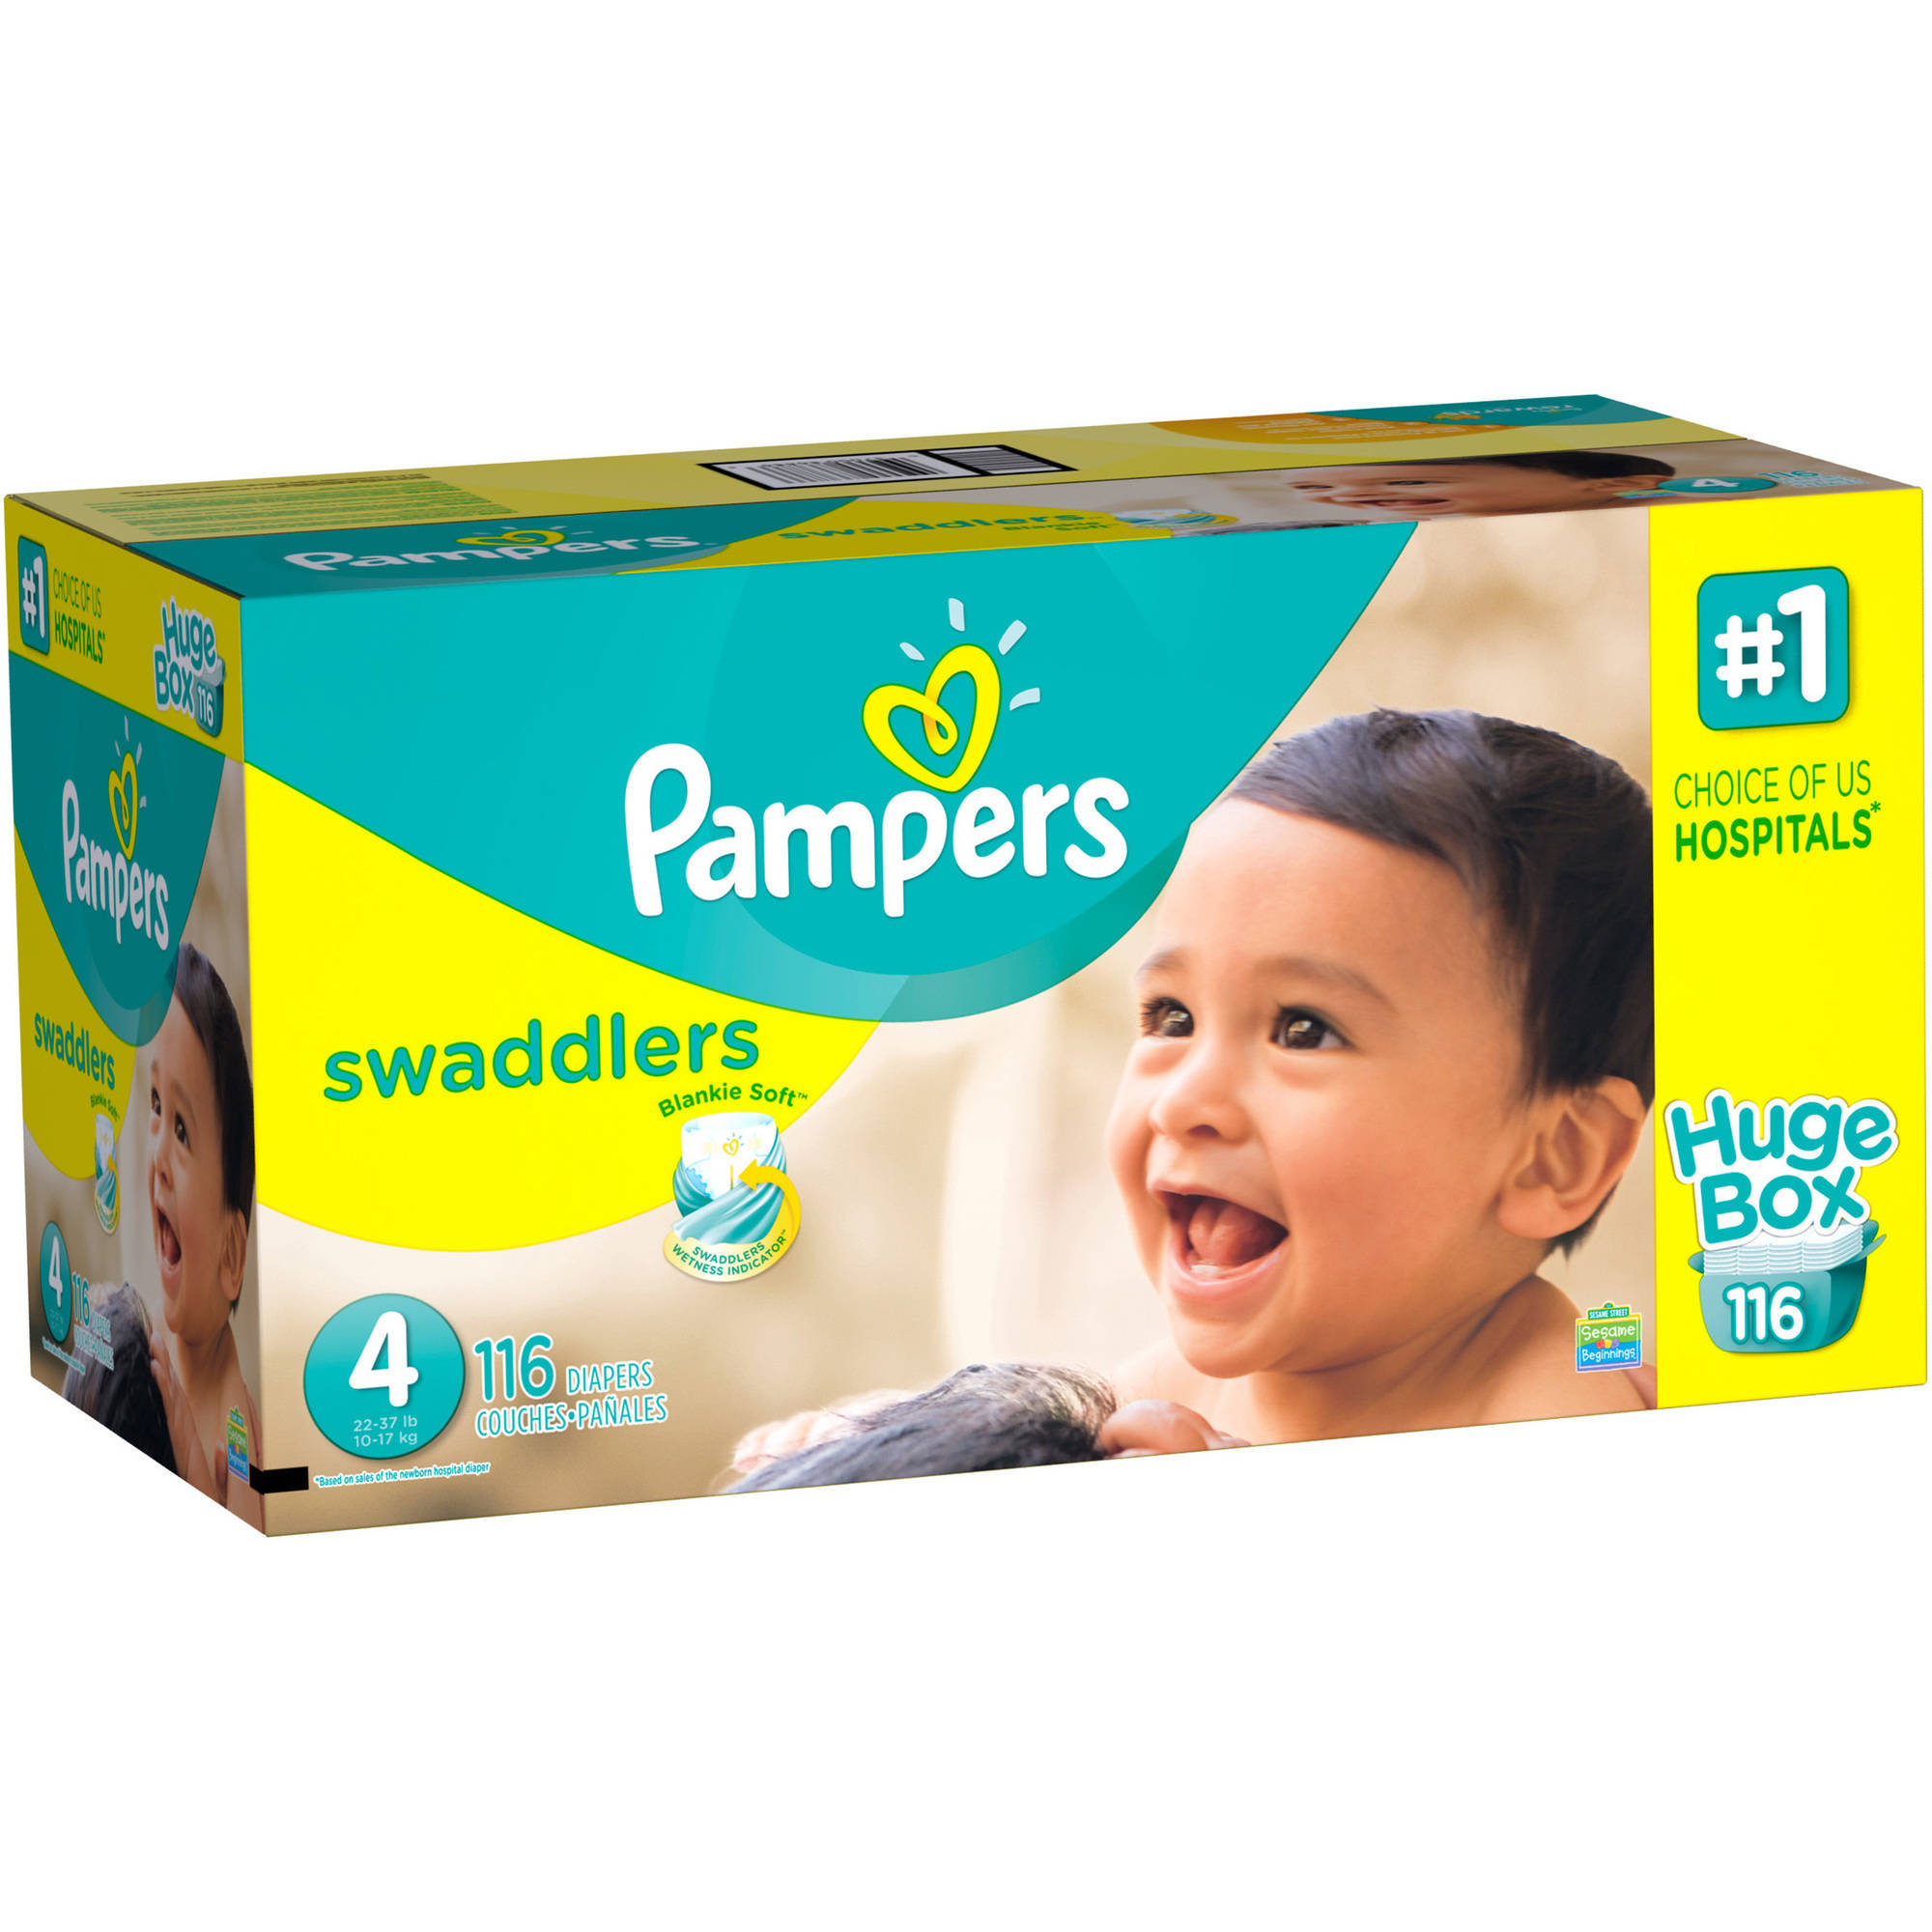 diaper size and weight chart pampers swaddlers diapers size 1 economy pack plus pampers swaddlers diapers size 1 diapers walmart pampers swaddlers size chart pampers size chart good pampers swaddlers diapers super pack select size tar pampers size 7 on shoppinder amazon pampers diapering essentials guide baby products pampers size 4.